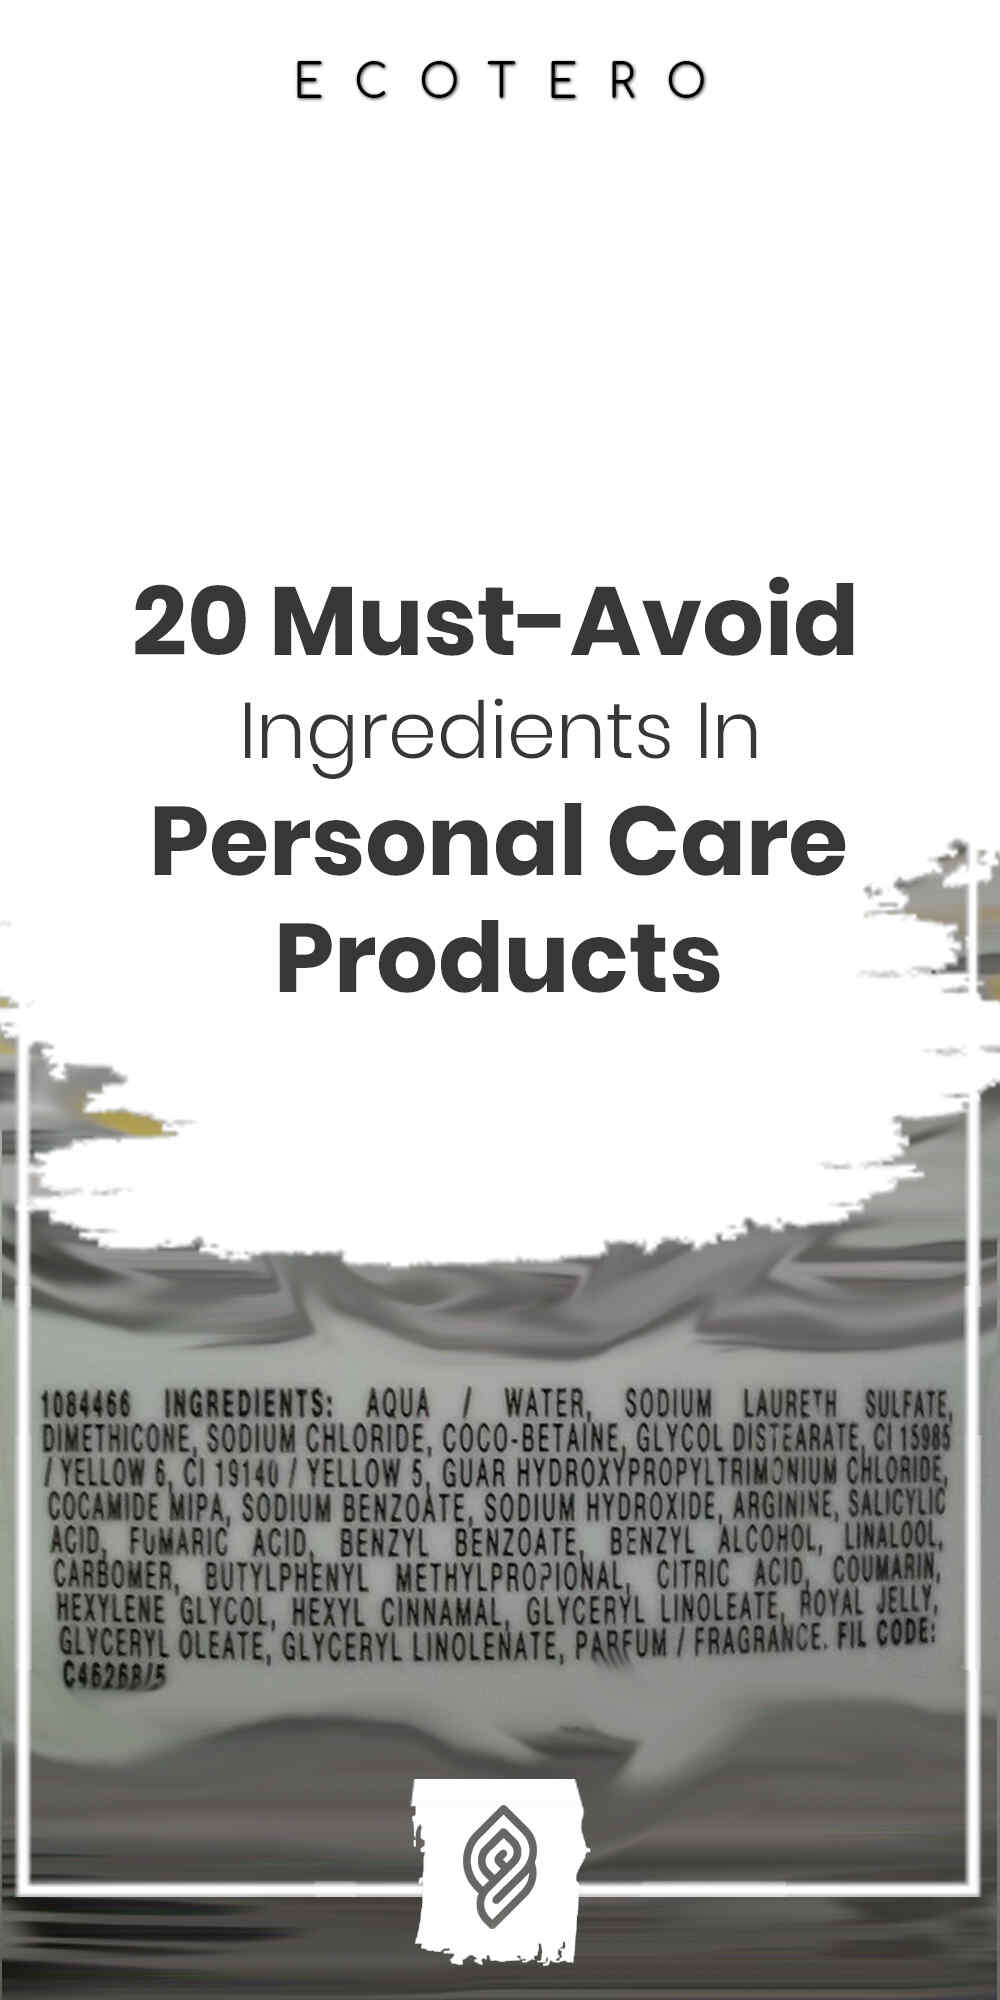 Harmful-Ingredients-To-Avoid-In-Personal-Care-Products